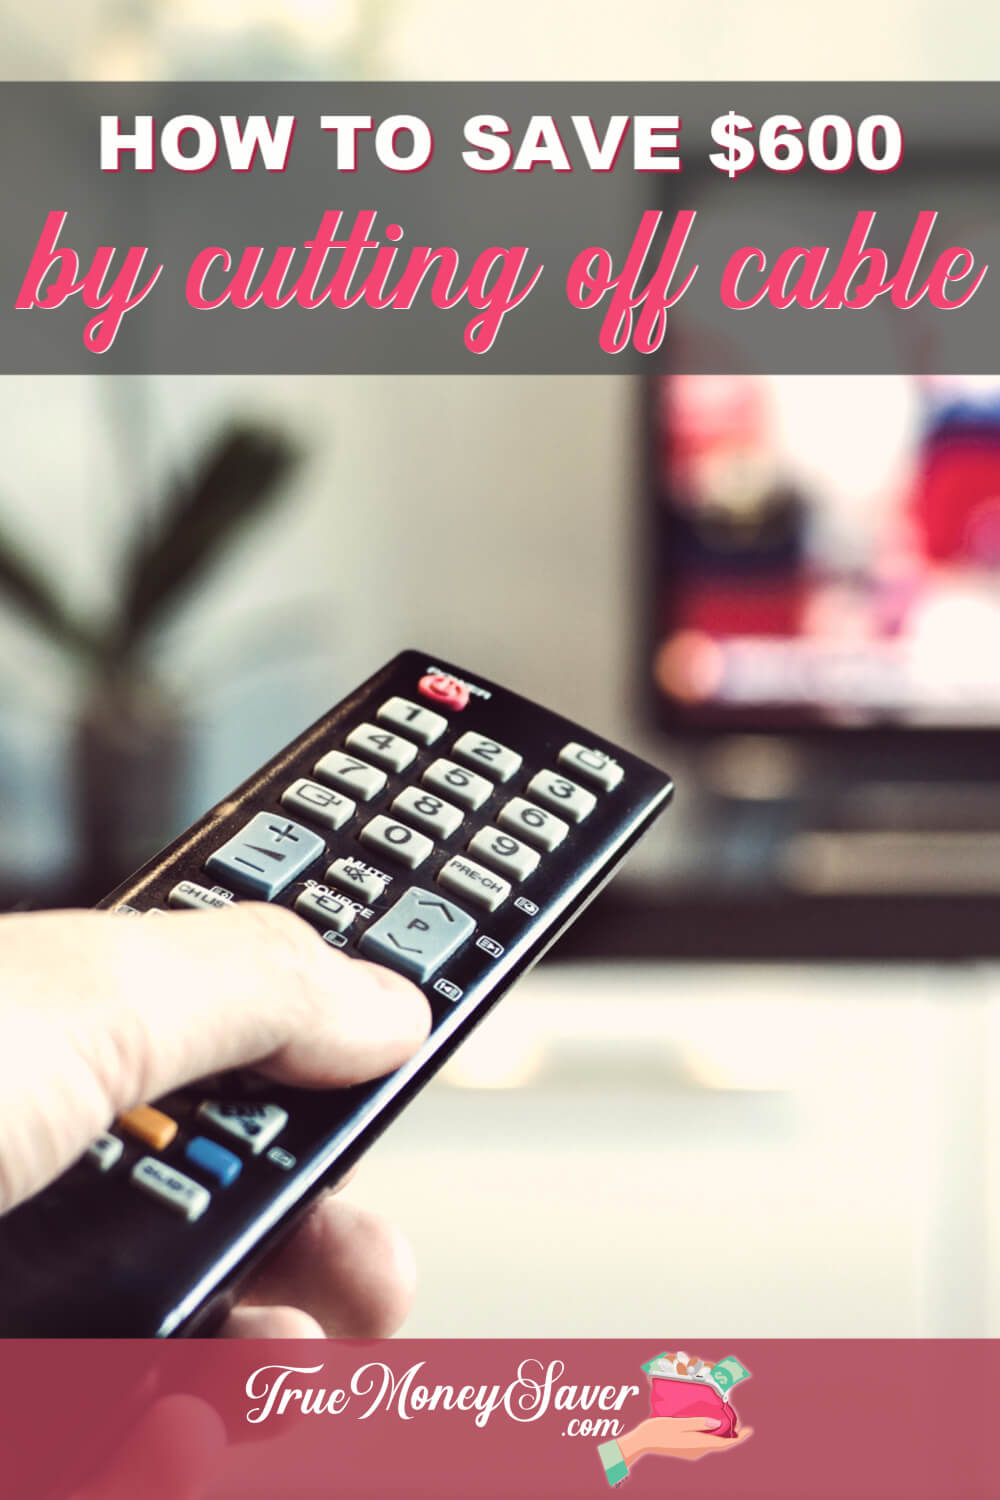 Is it time to cut out that hefty cable bill? You can save on your cable bill but cutting it for good! Here\'s how to save money on cable by cutting it off! Learn how much you can save today! #truemoneysaver #cable #cablebill #cablebills #cablebillhigh #cutoffcable #cutingcables #bill #bills #billtoohigh #cutthecable #cutthecablecord #cutthecablebill #cutthecableline #cutthecableoff #cutthecabletv #cutthecablebills